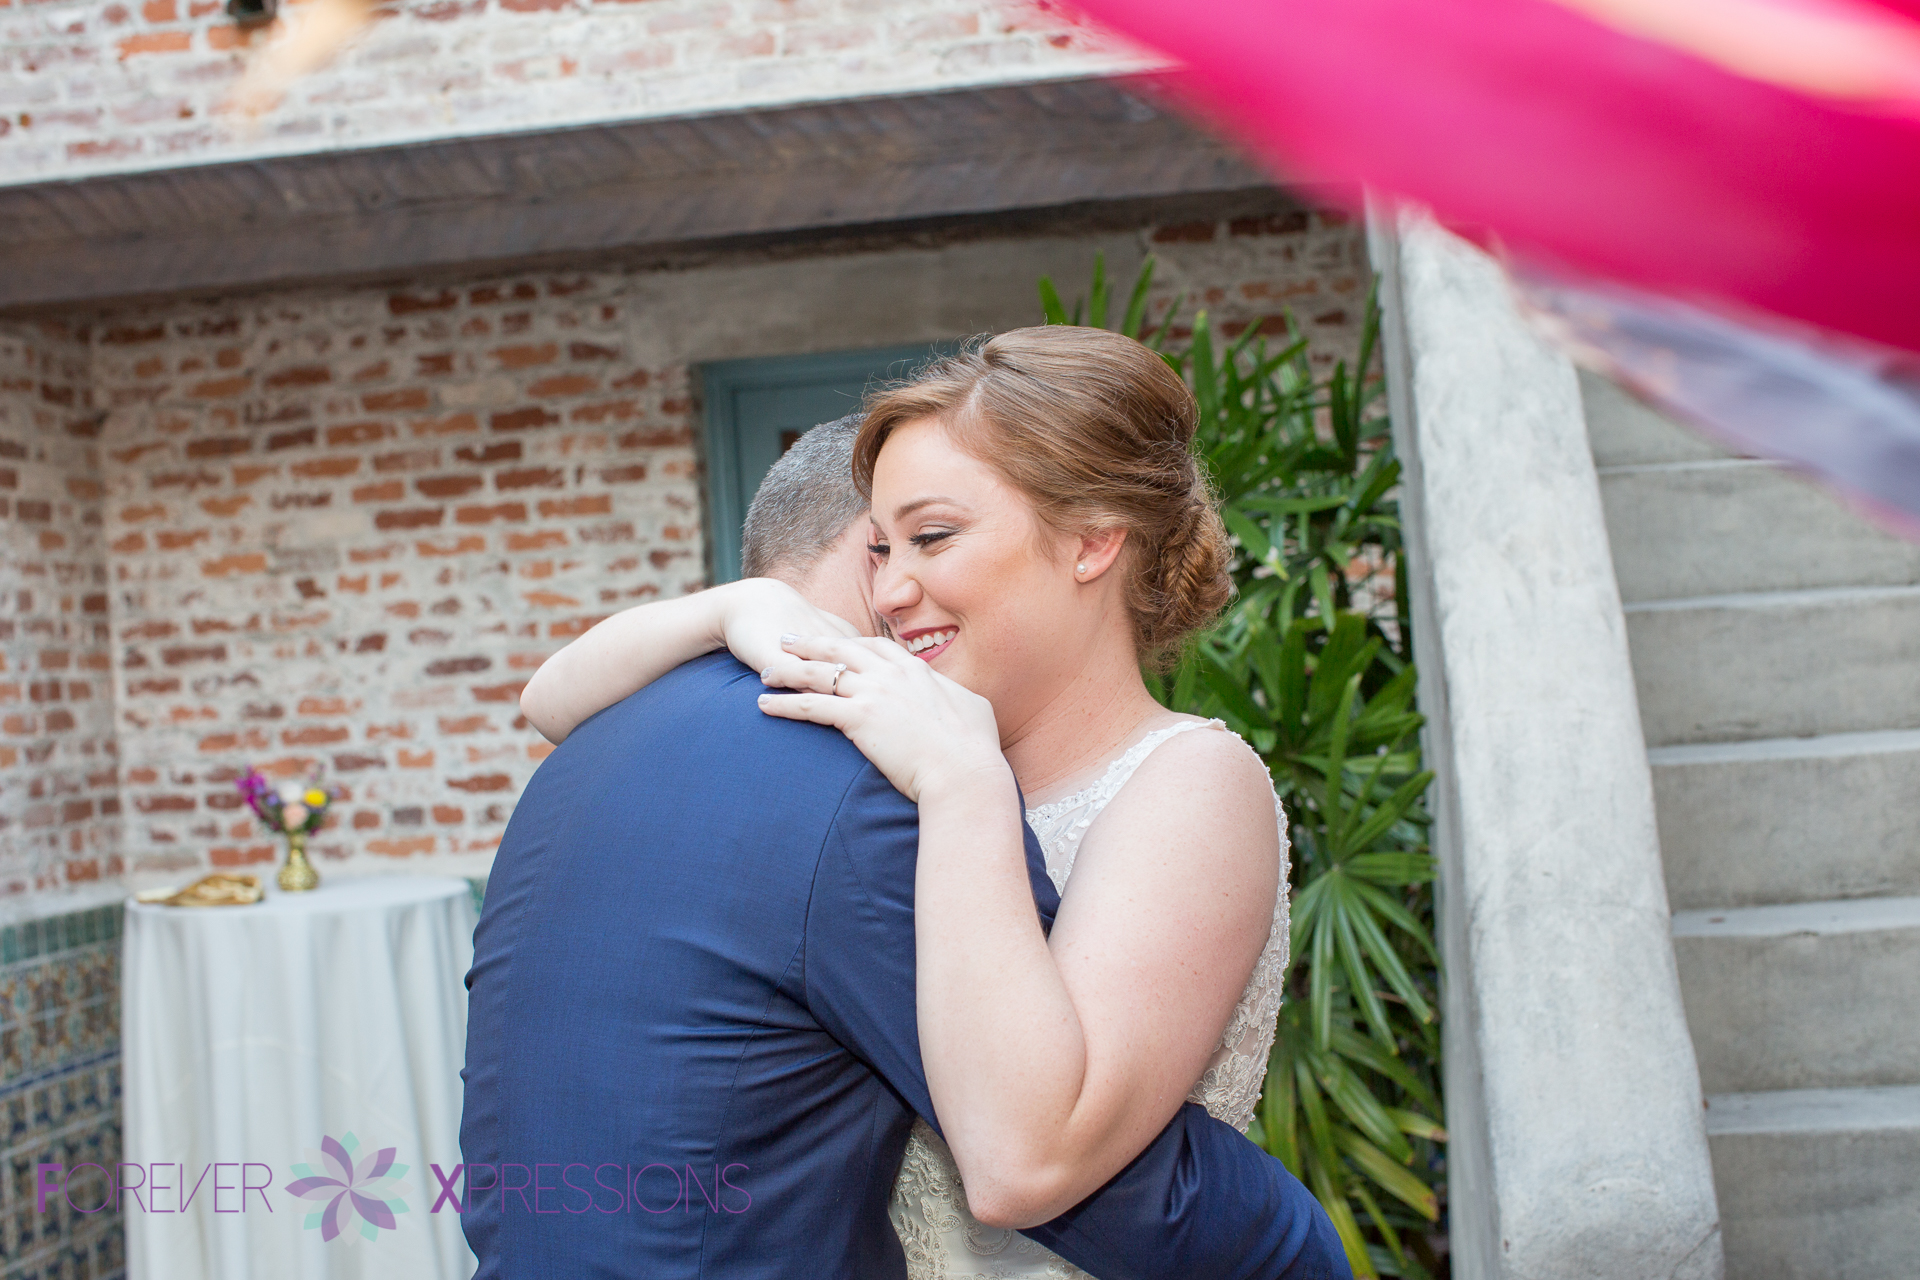 Forever_Xpressions_Wedding_Photography_Winterpark_Casa_Feliz-0248